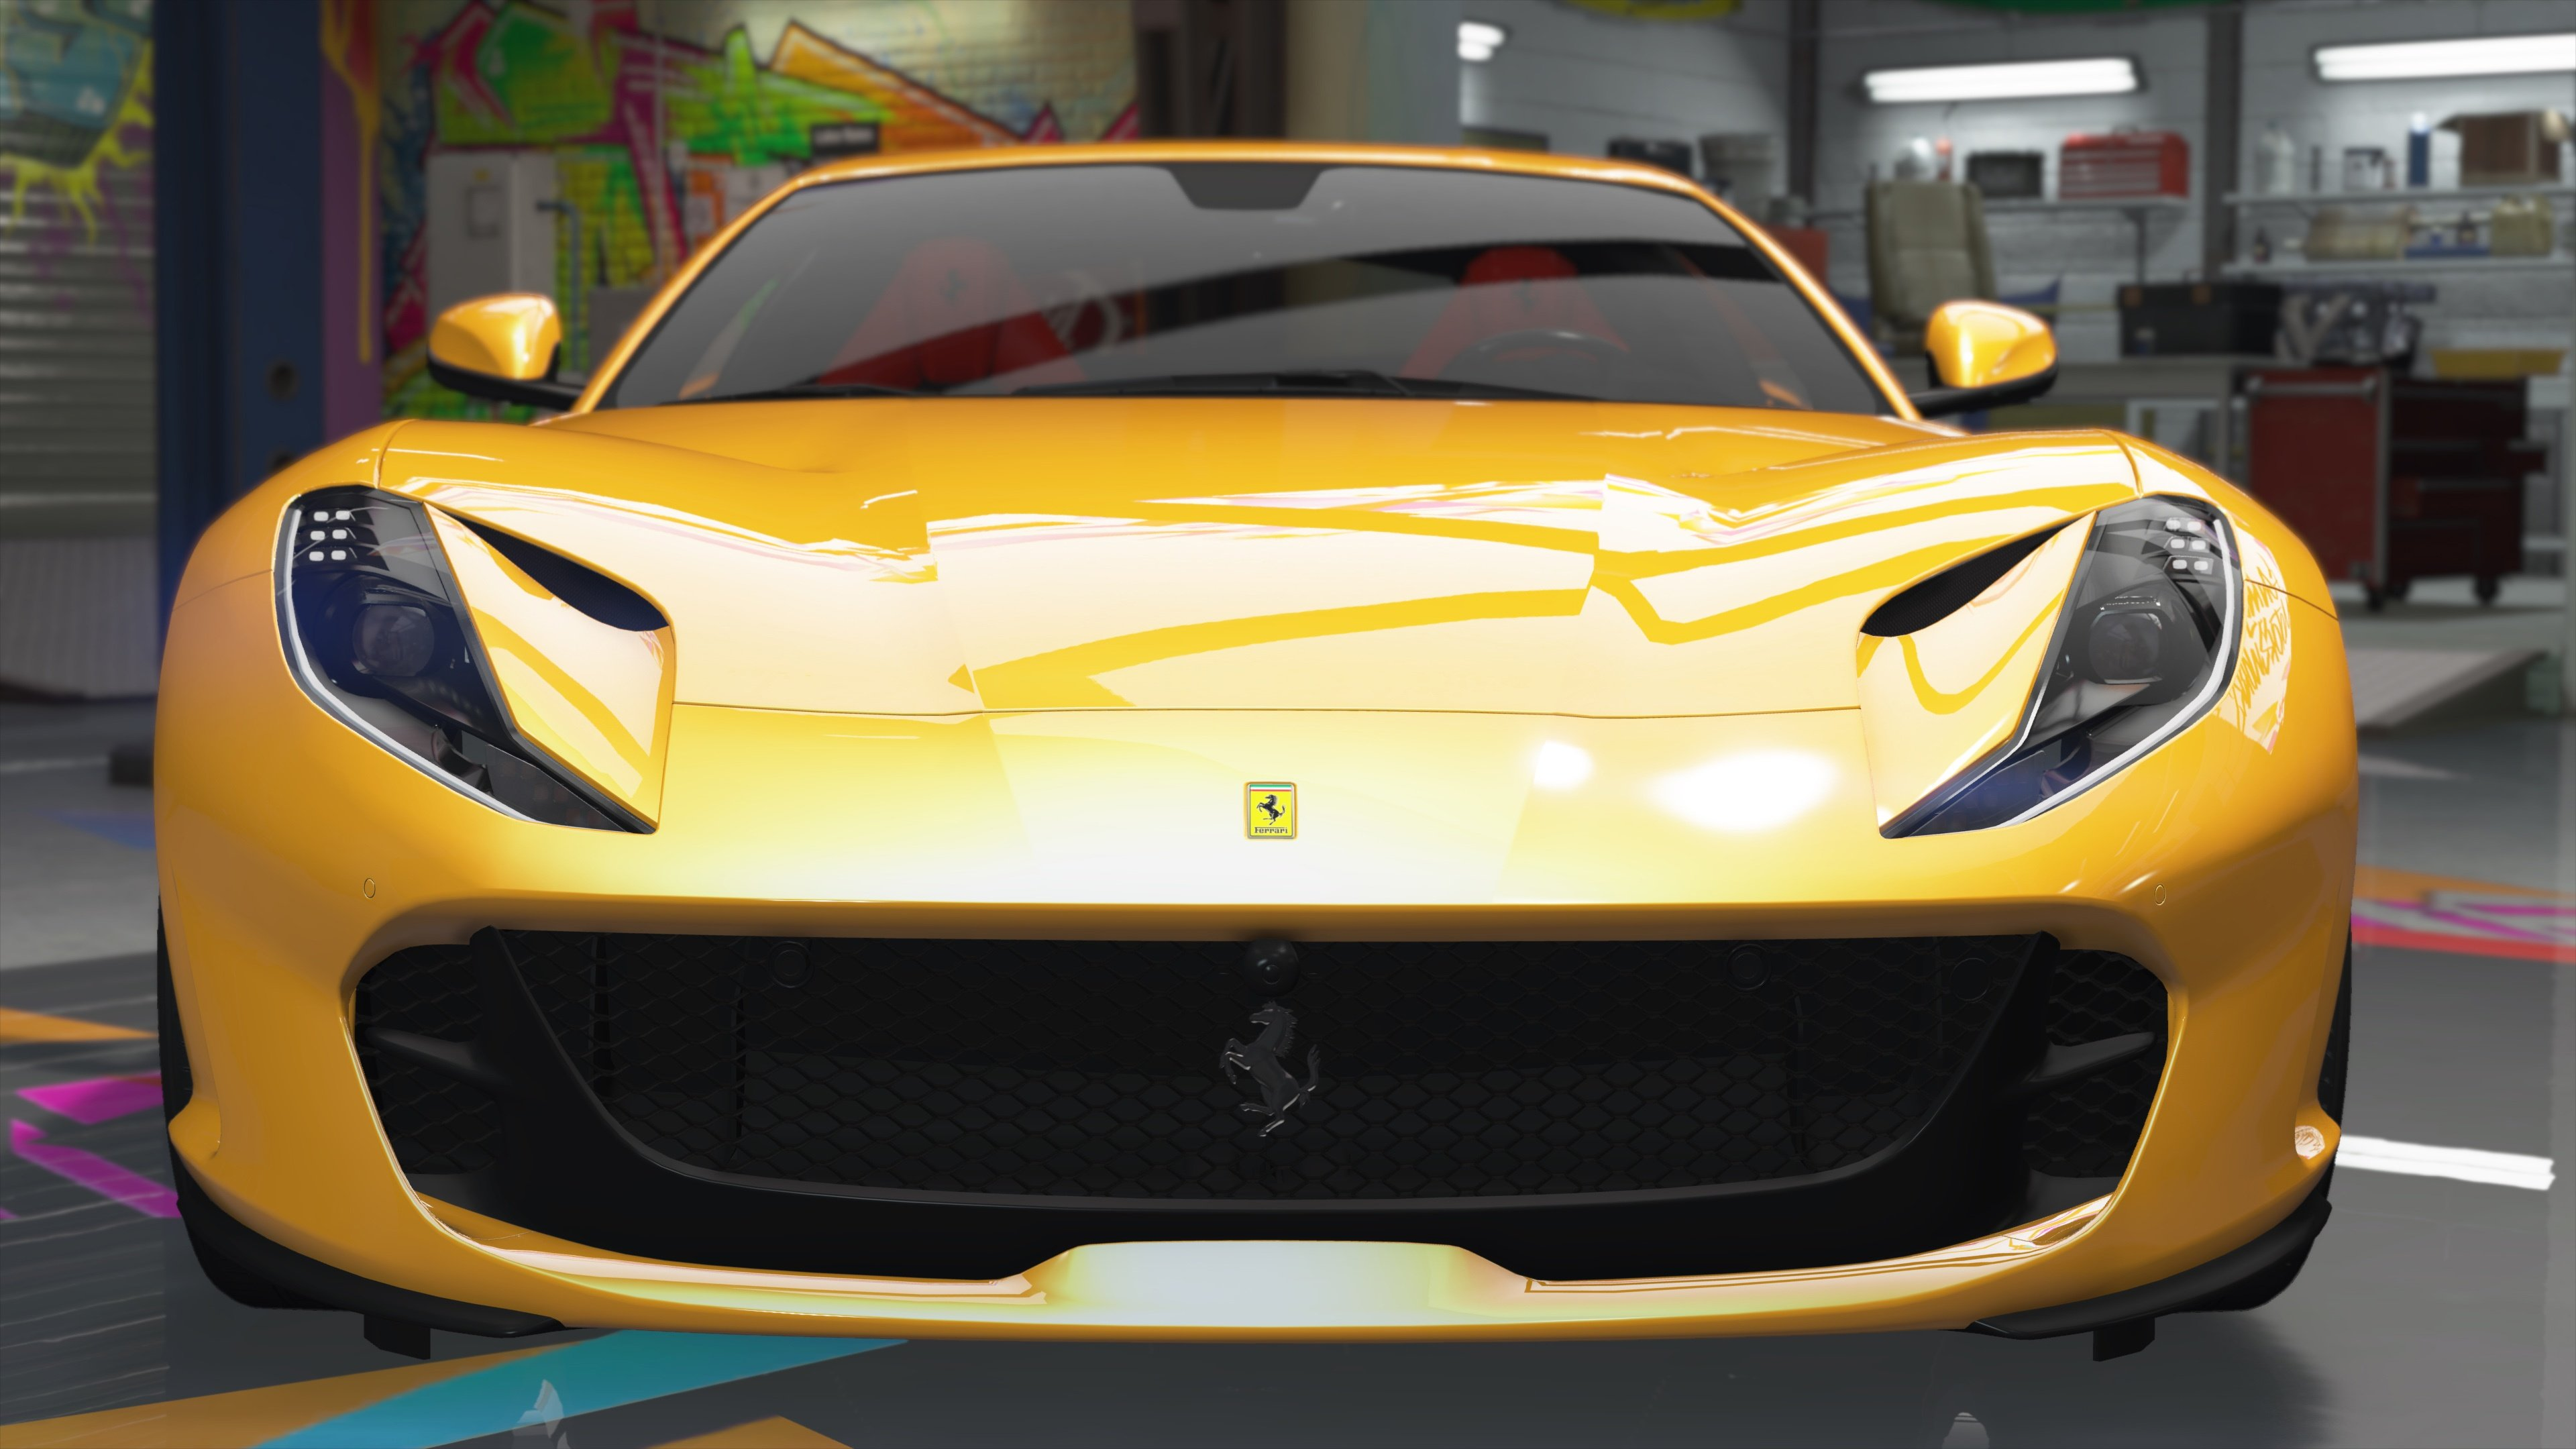 2018 Ferrari 812 Superfast [Livery   Add-on   Replace] 2.7a